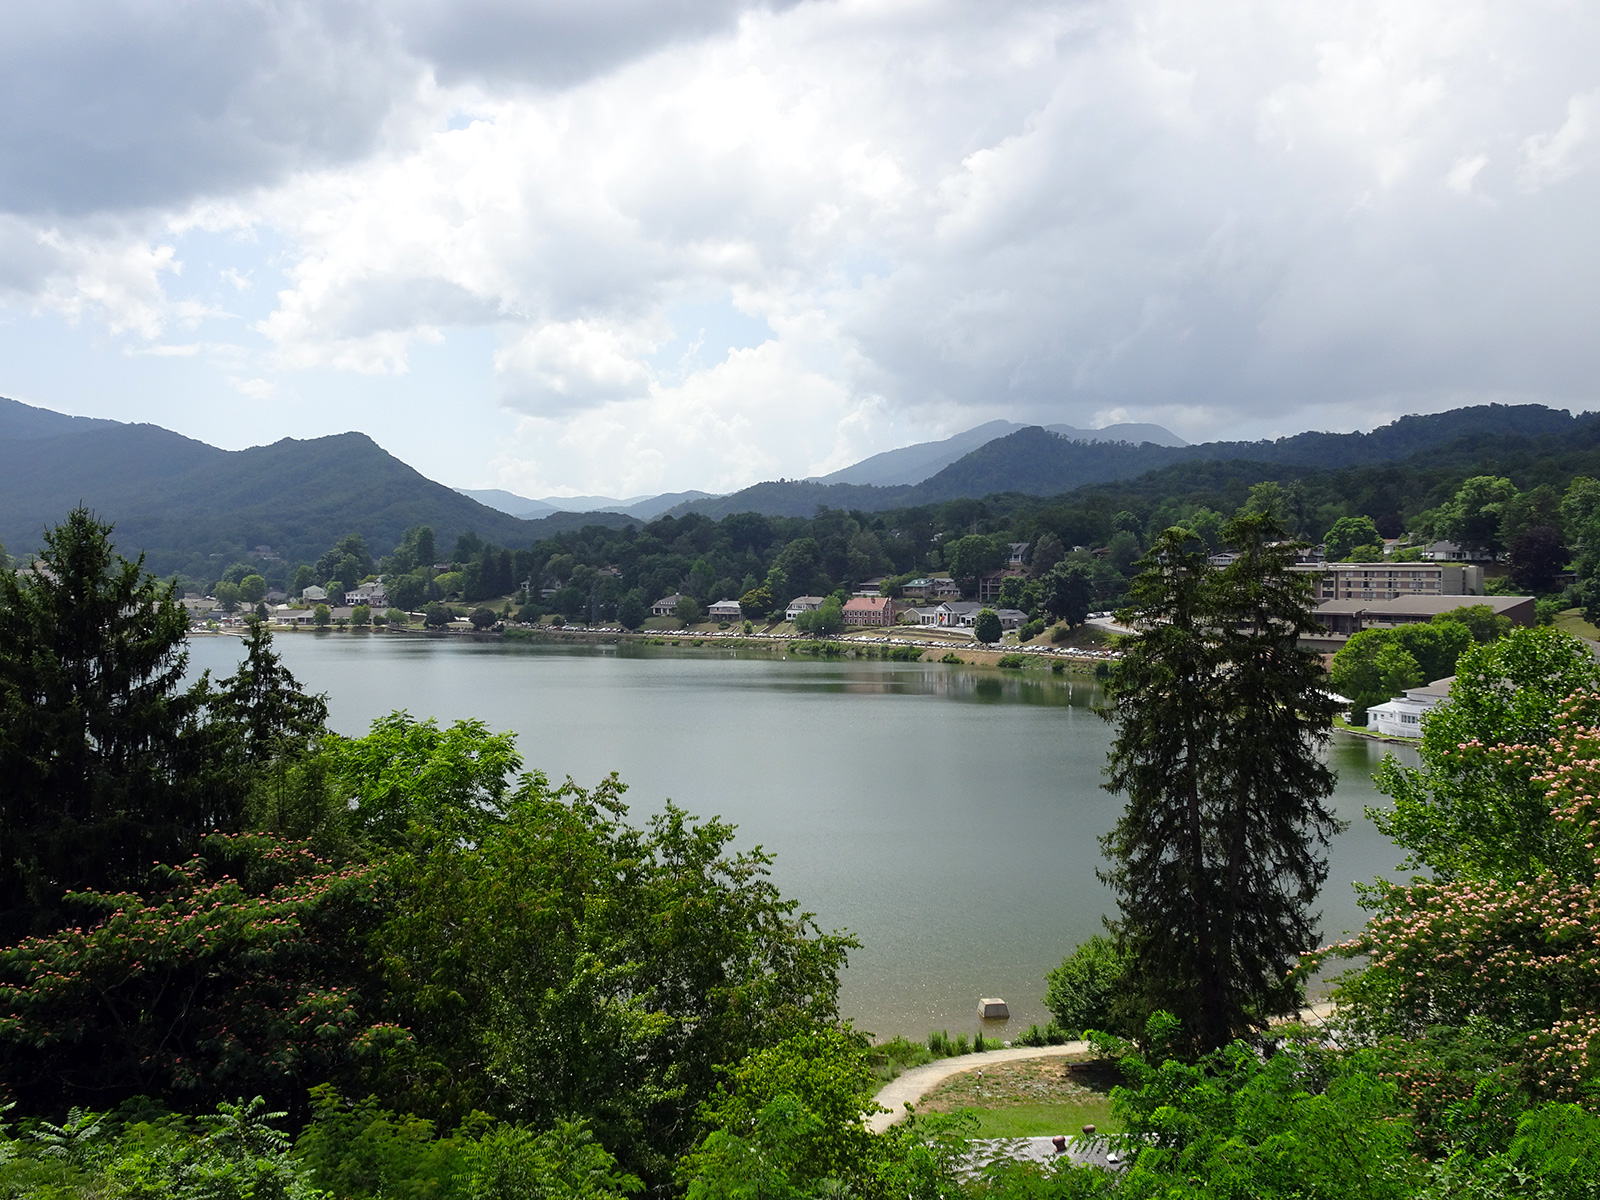 Lake Junaluska, North Carolina by Jets Like Taxis